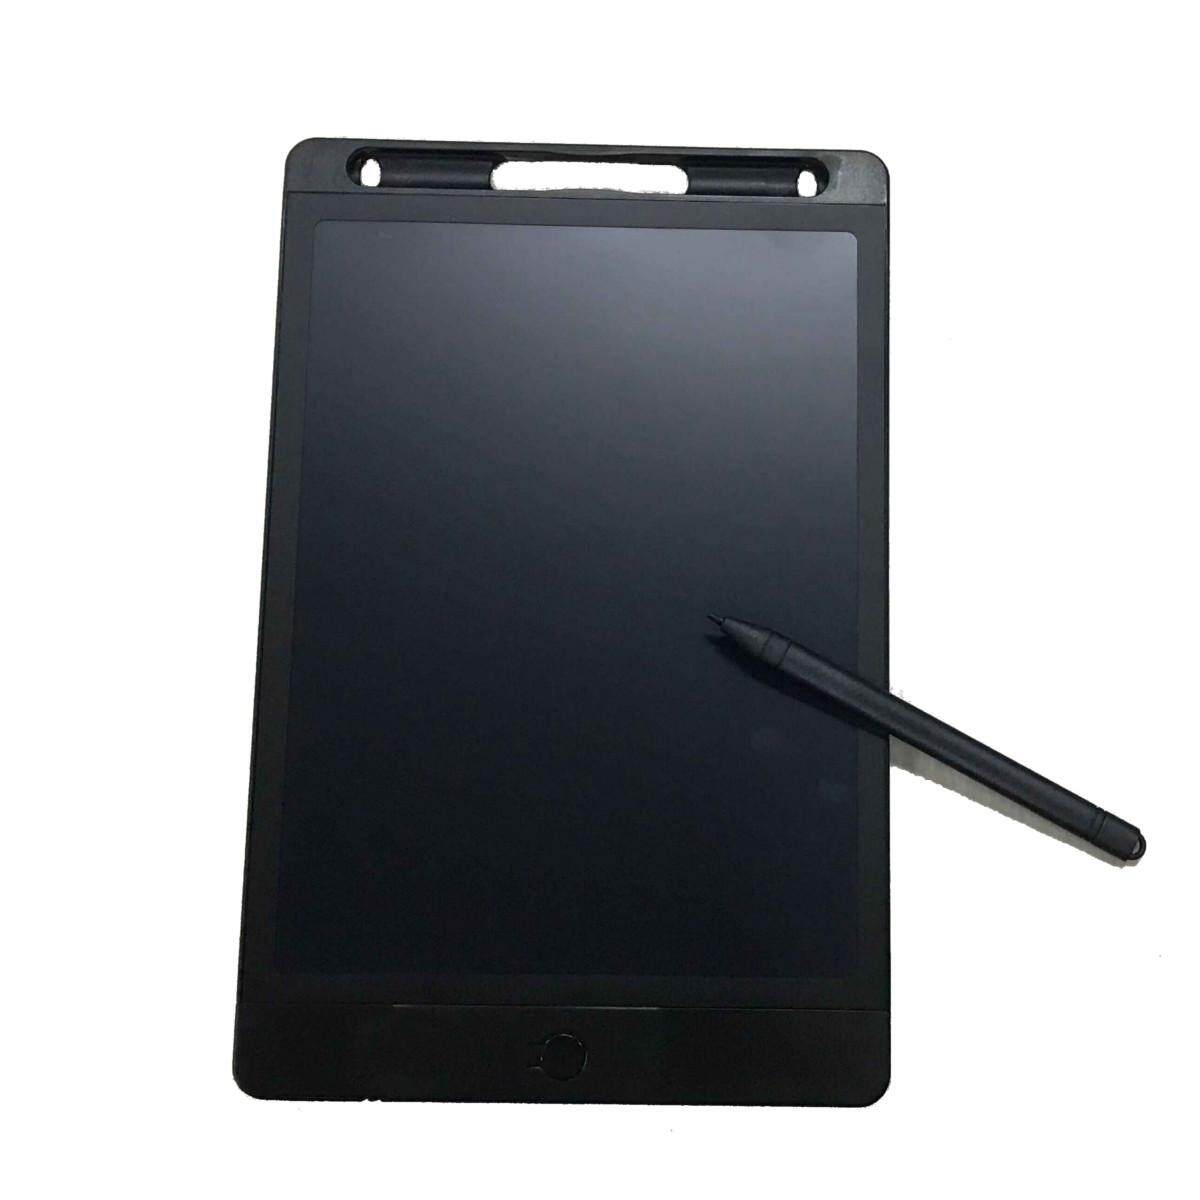 Mua Electronic Digital Colorful LCD Writing Pad Tablet Drawing Graphic Board Notepad